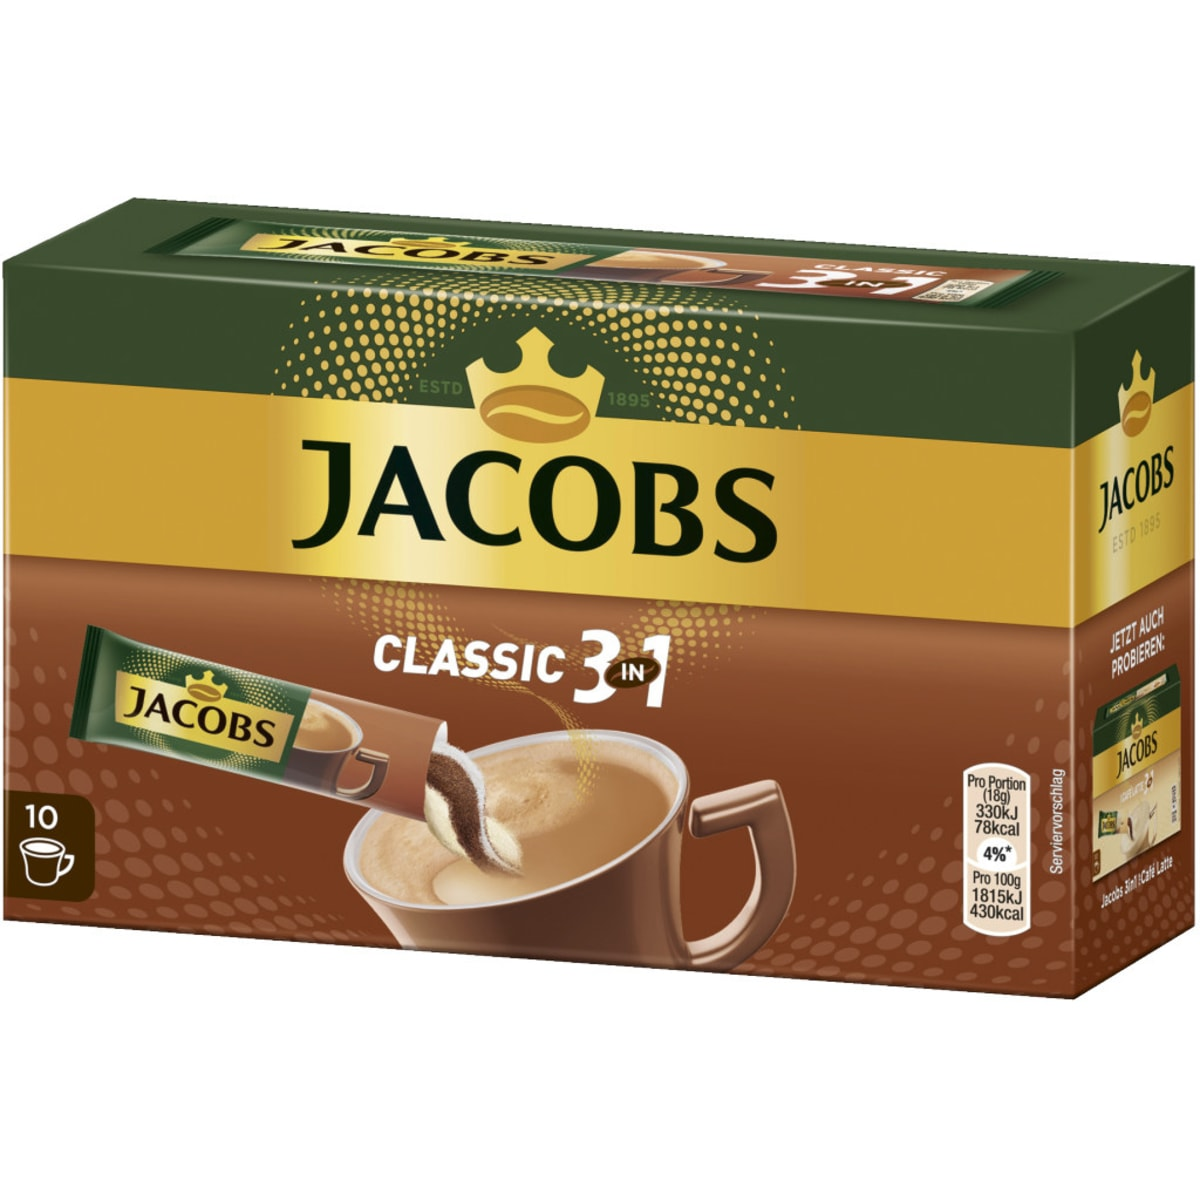 Jacobs 3in1 10 Sticks